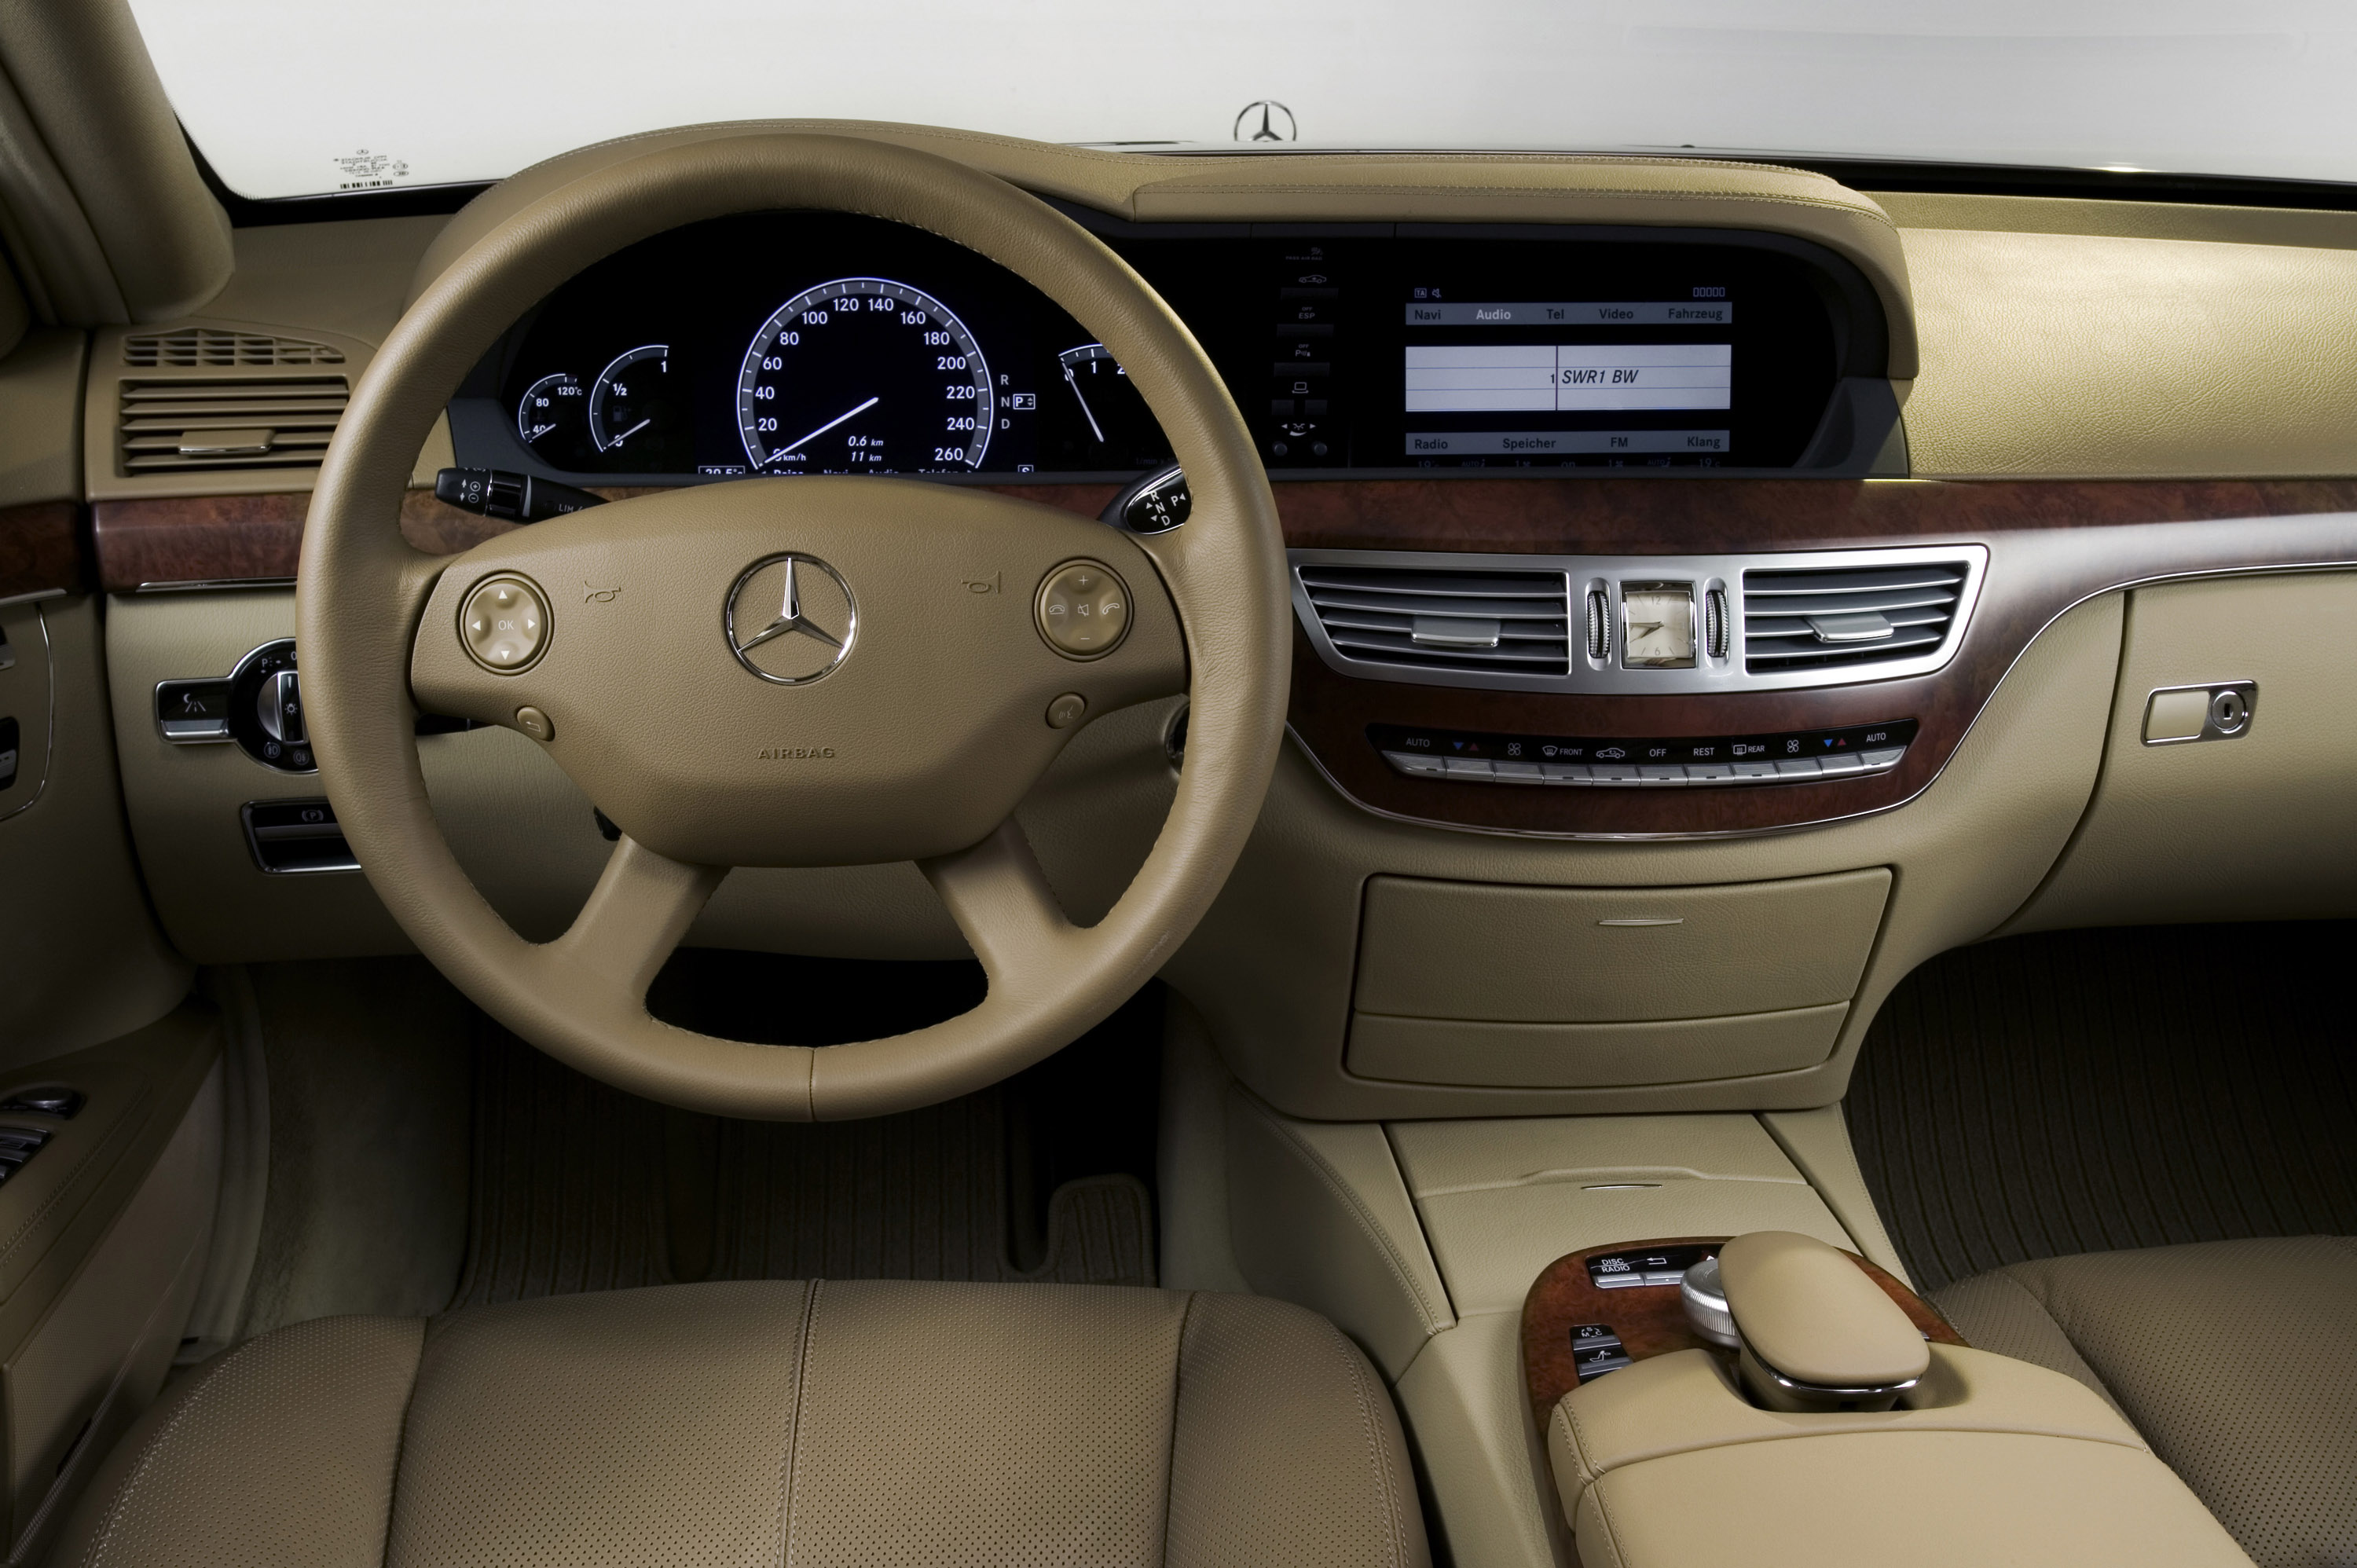 2009 ford everest dominant toughness in fresh appearance for 2006 mercedes benz s class